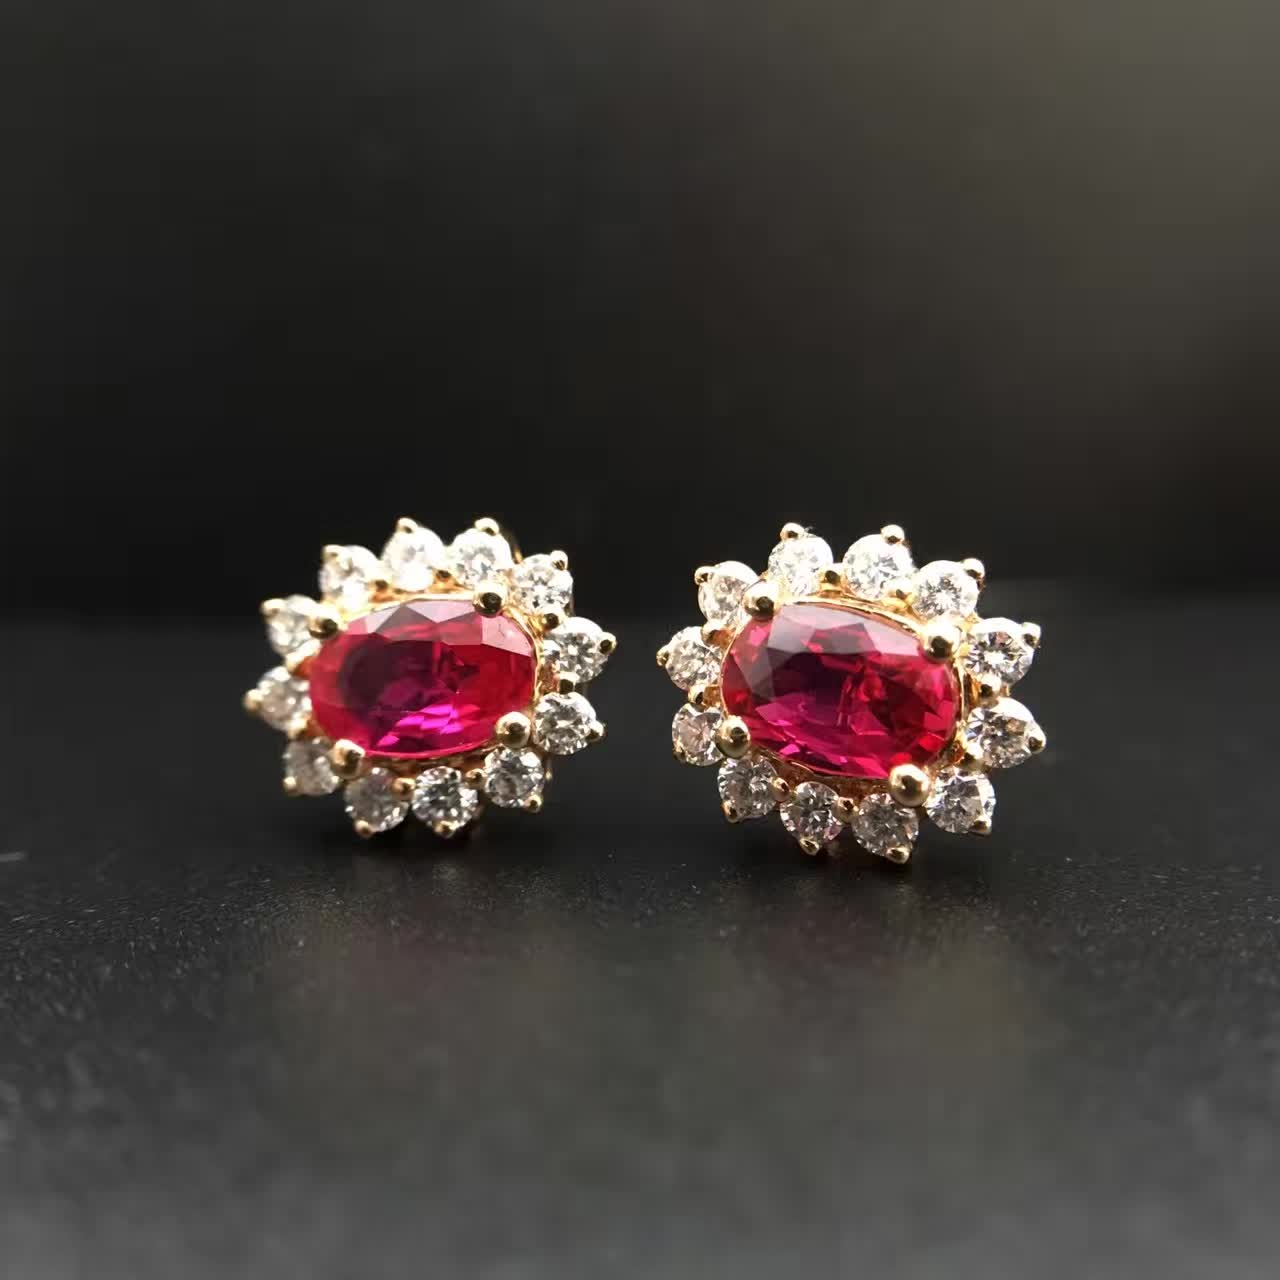 1020ct+0445ct 18k Gold Natural Ruby Stud Earrings For Women Diamond  Encrusted Free